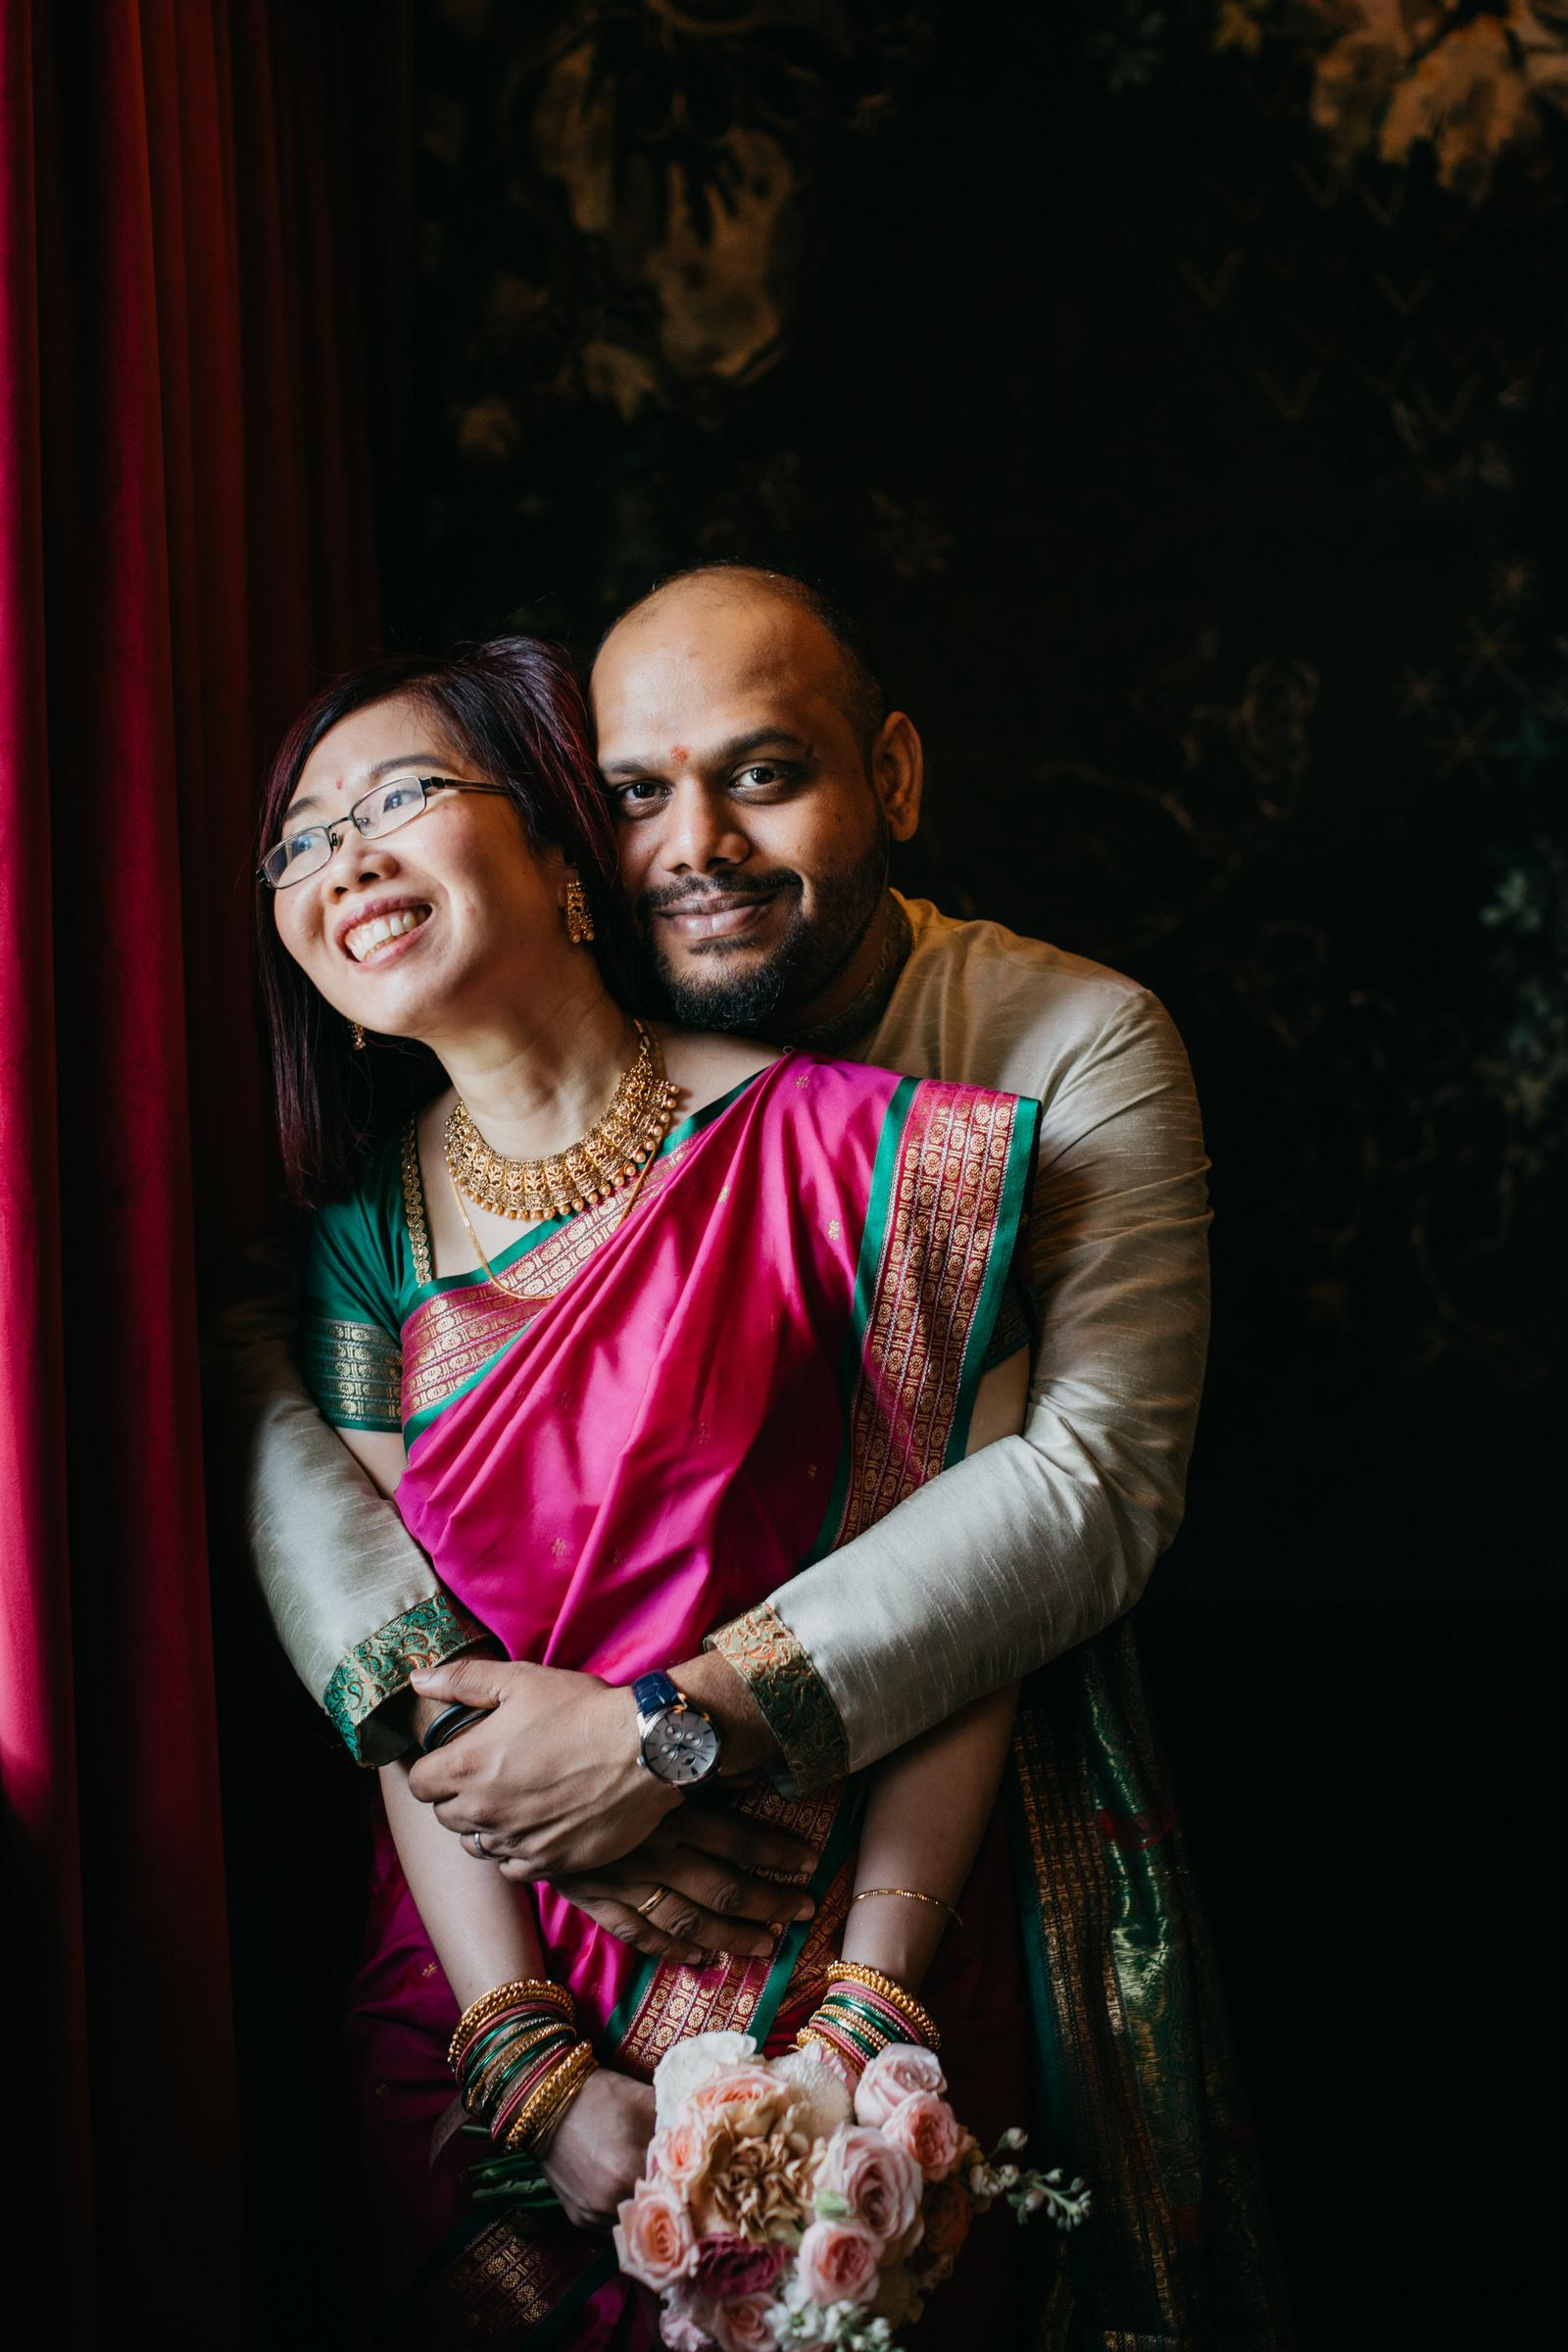 Couple Photo Post-wedding An intimate cross-cultural indian chinese wedding at The Chow Kit Hotel in Kuala Lumpur Malaysia Wedding and Portrait Photographer Cliff Choong Photography